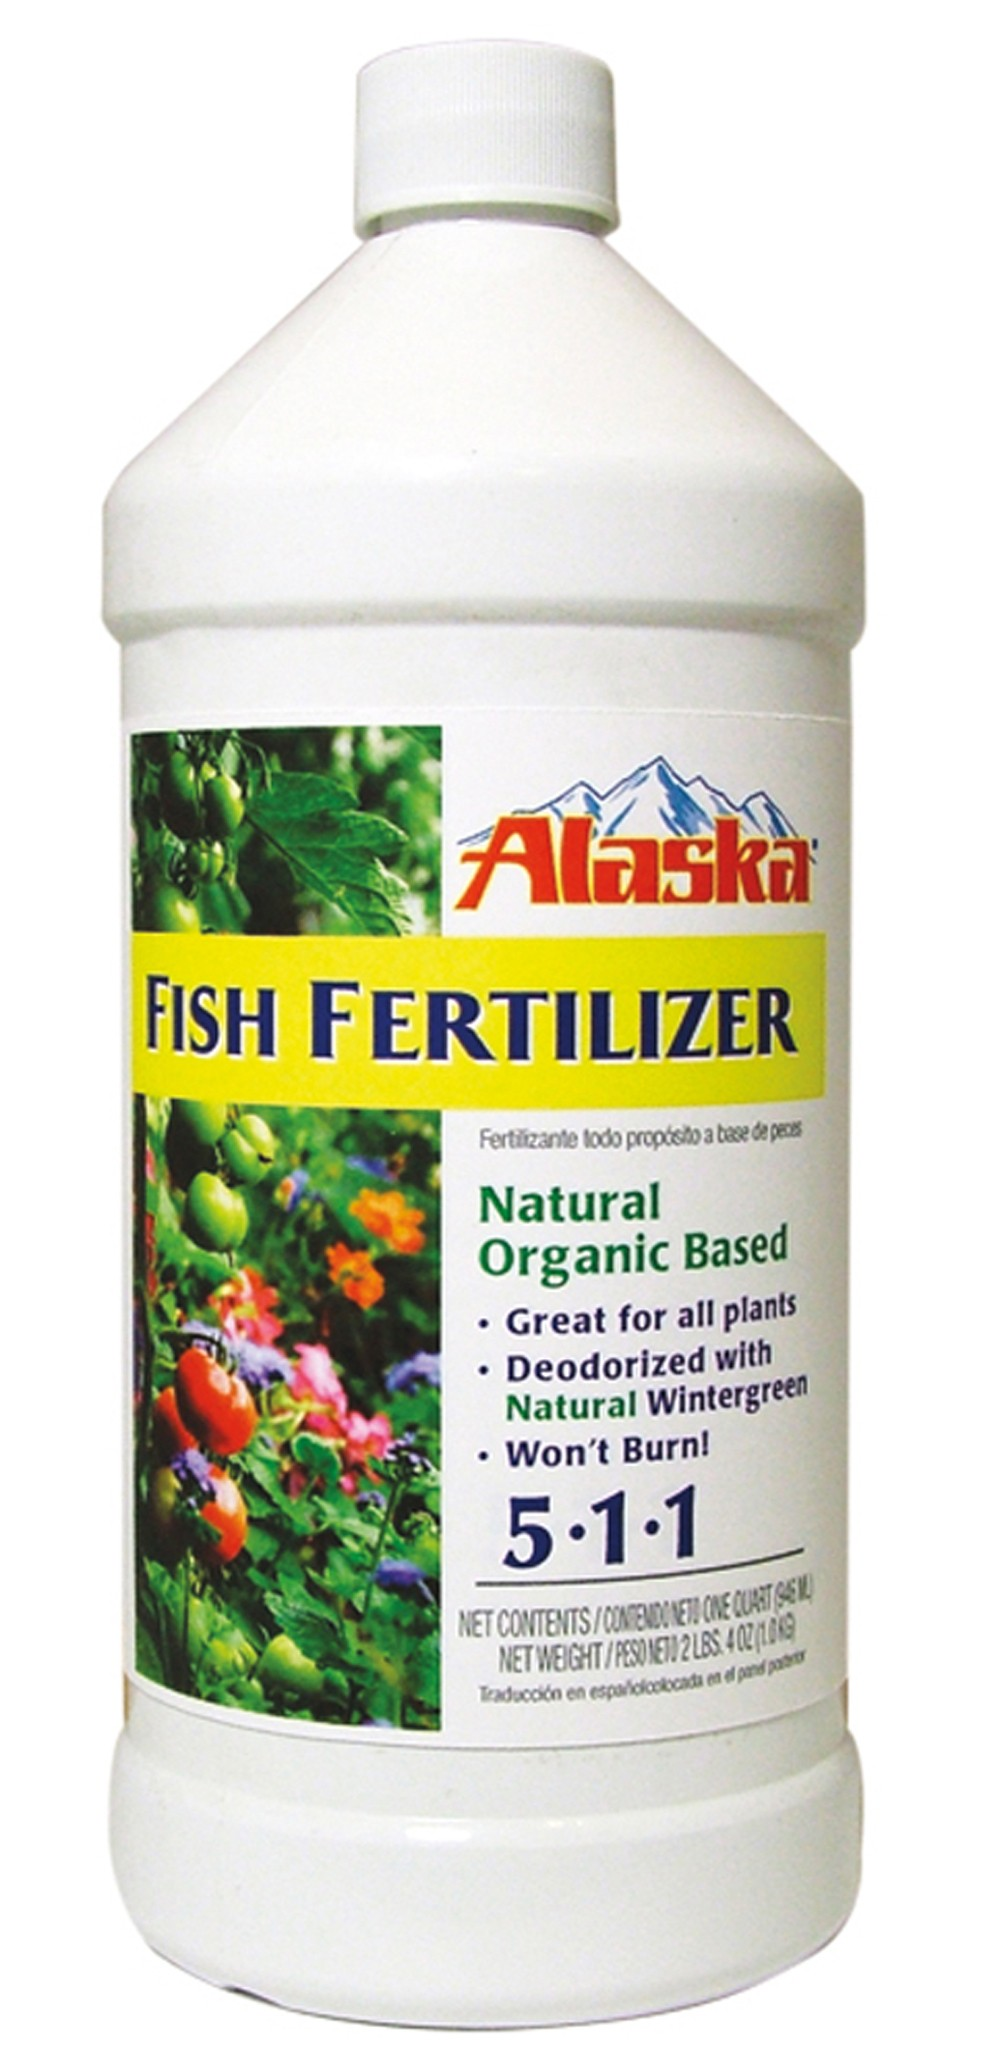 Fertilizers feed and weed control jamestown feed and seed for Organic fish fertilizer